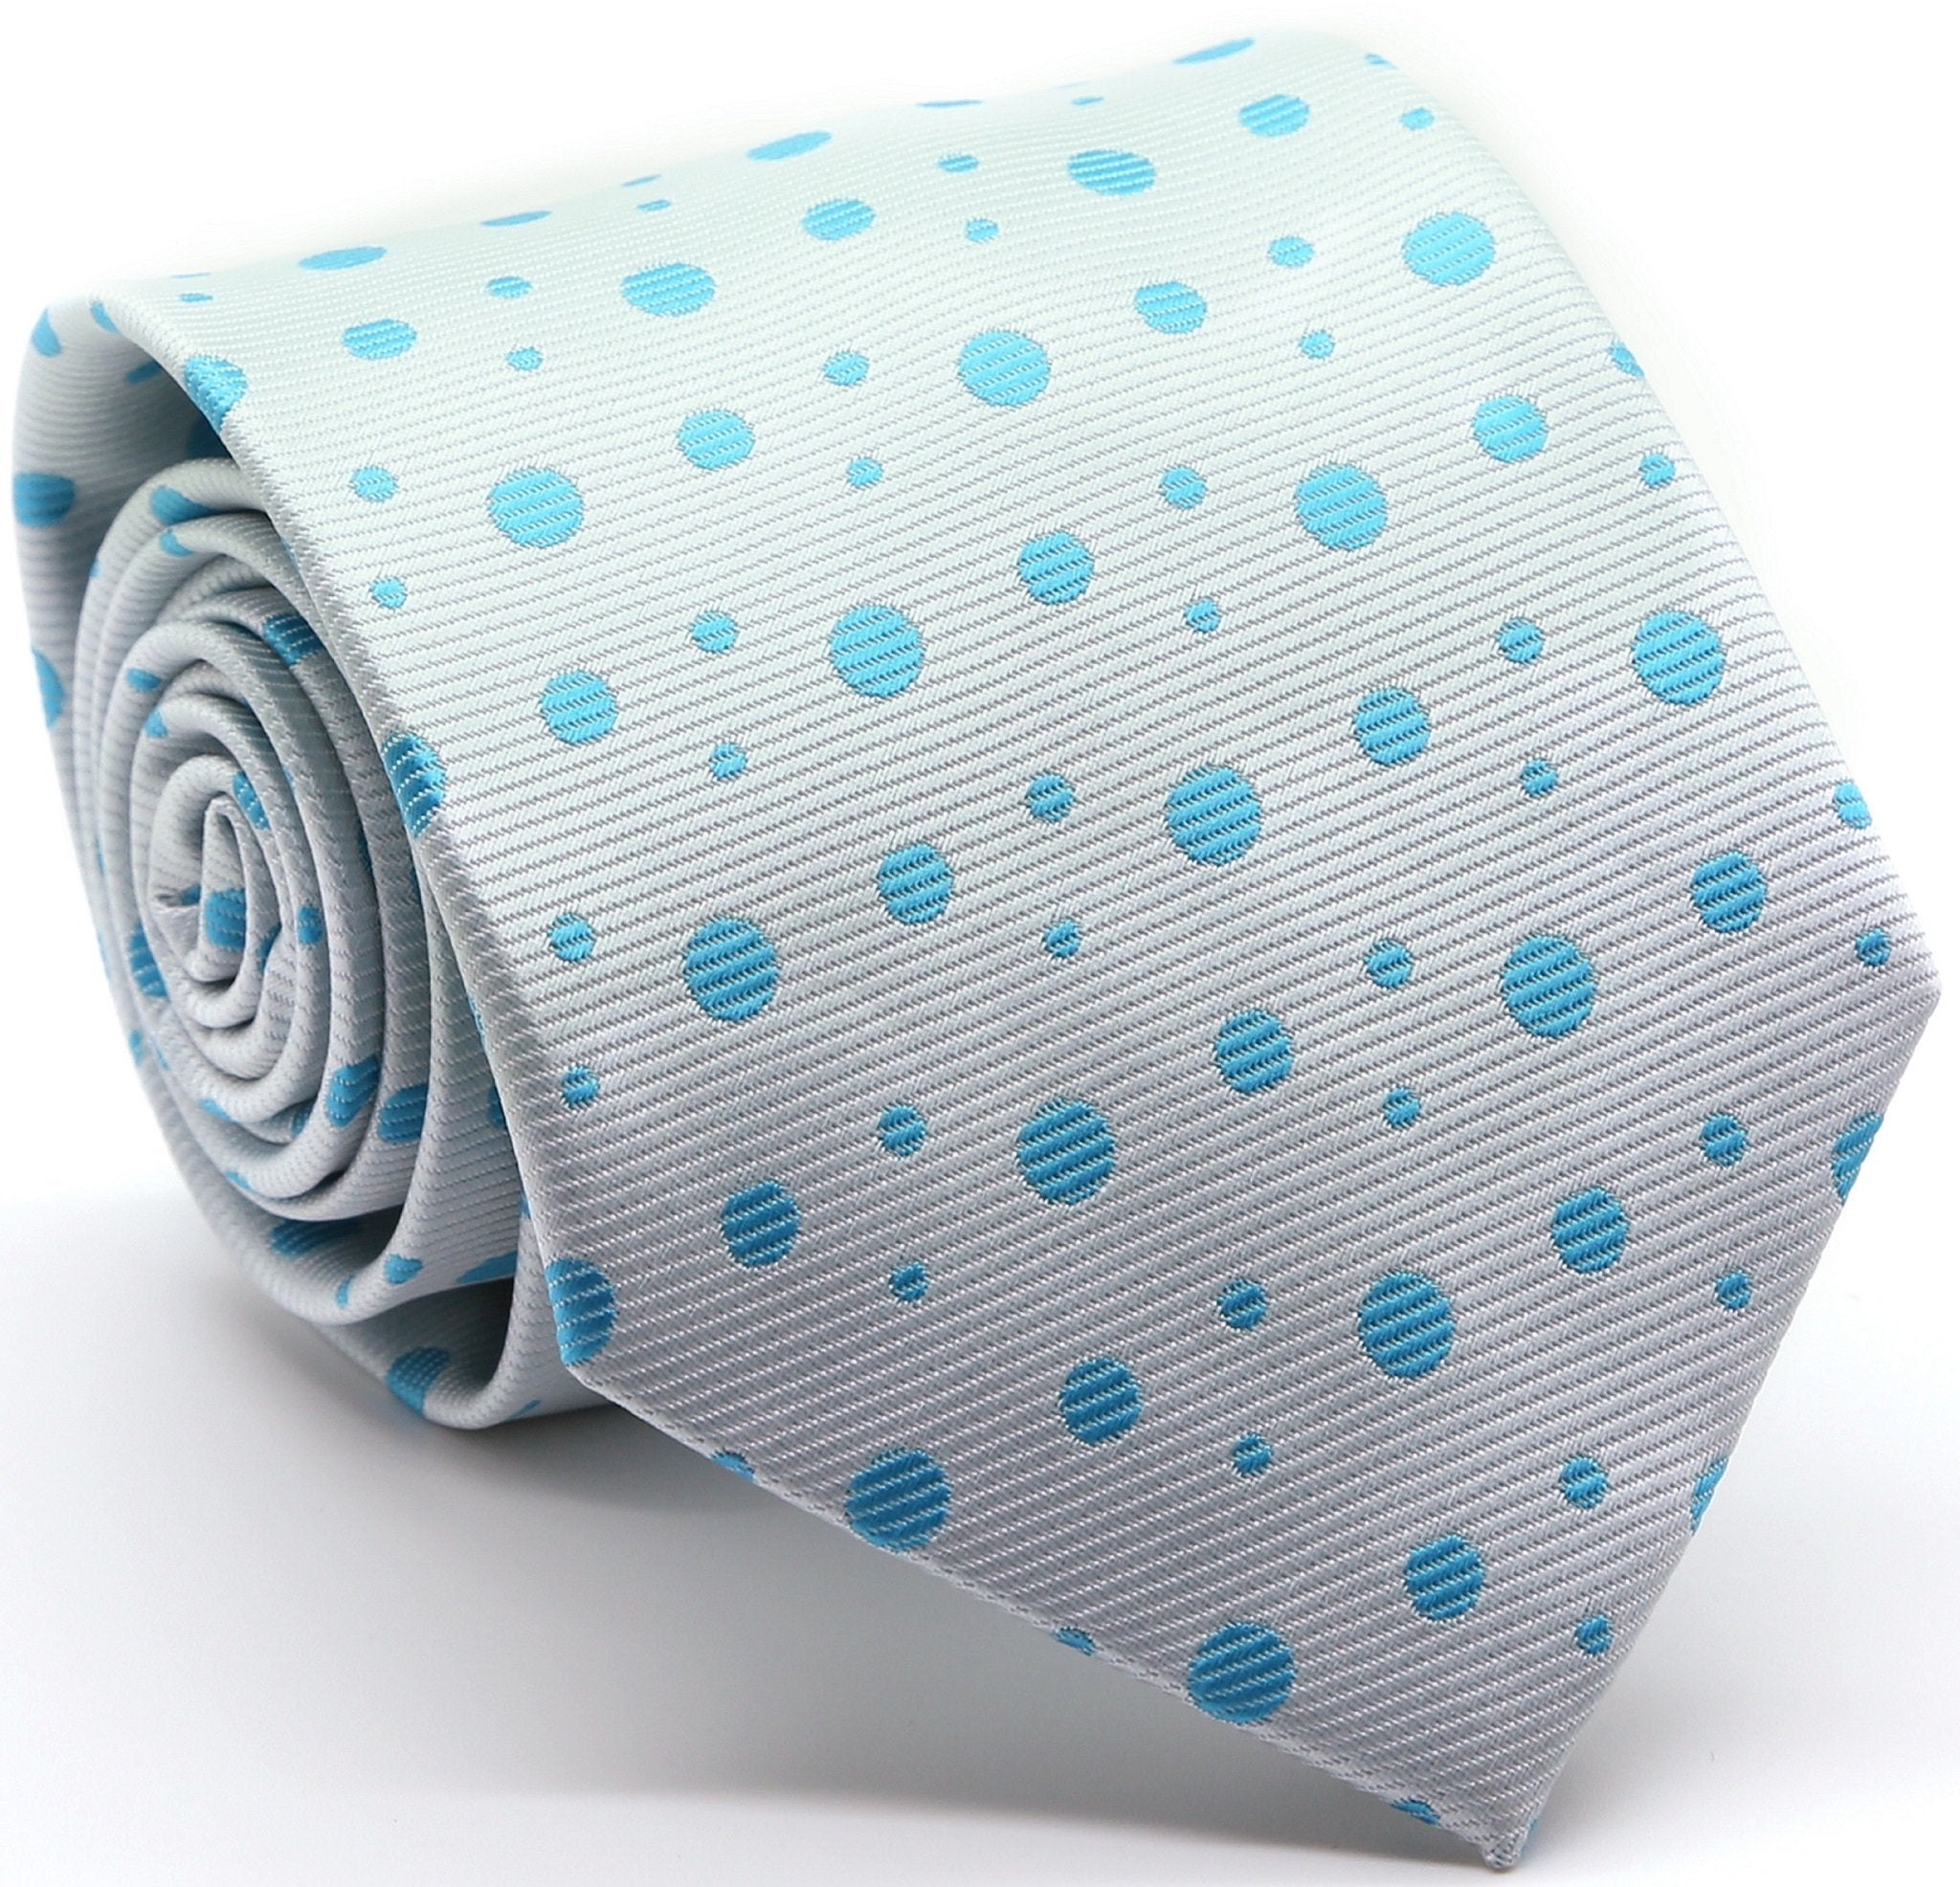 Mens Dads Classic Turquoise Circle Pattern Business Casual Necktie & Hanky Set MO-6 - Giorgio's Menswear